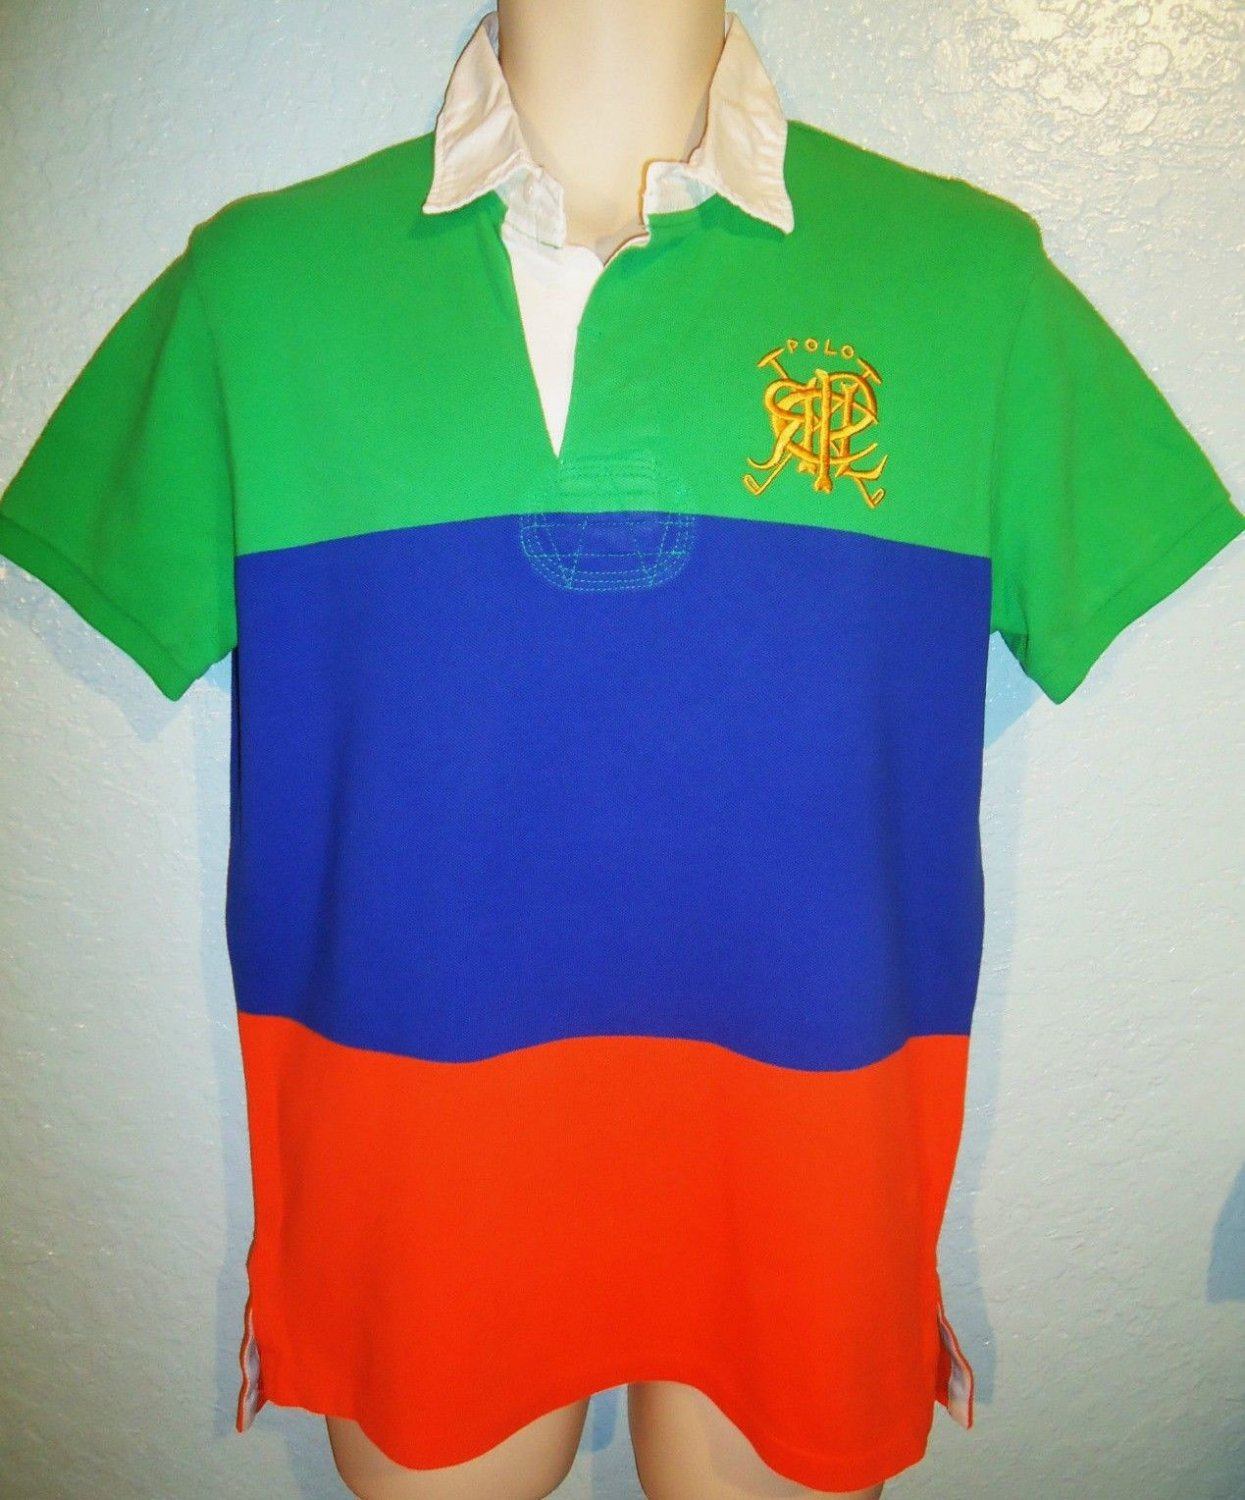 RALPH LAUREN - XL - GREEN - BLUE - RUGBY - POLO - SHIRT - NEW - CUSTOM FIT - RRL